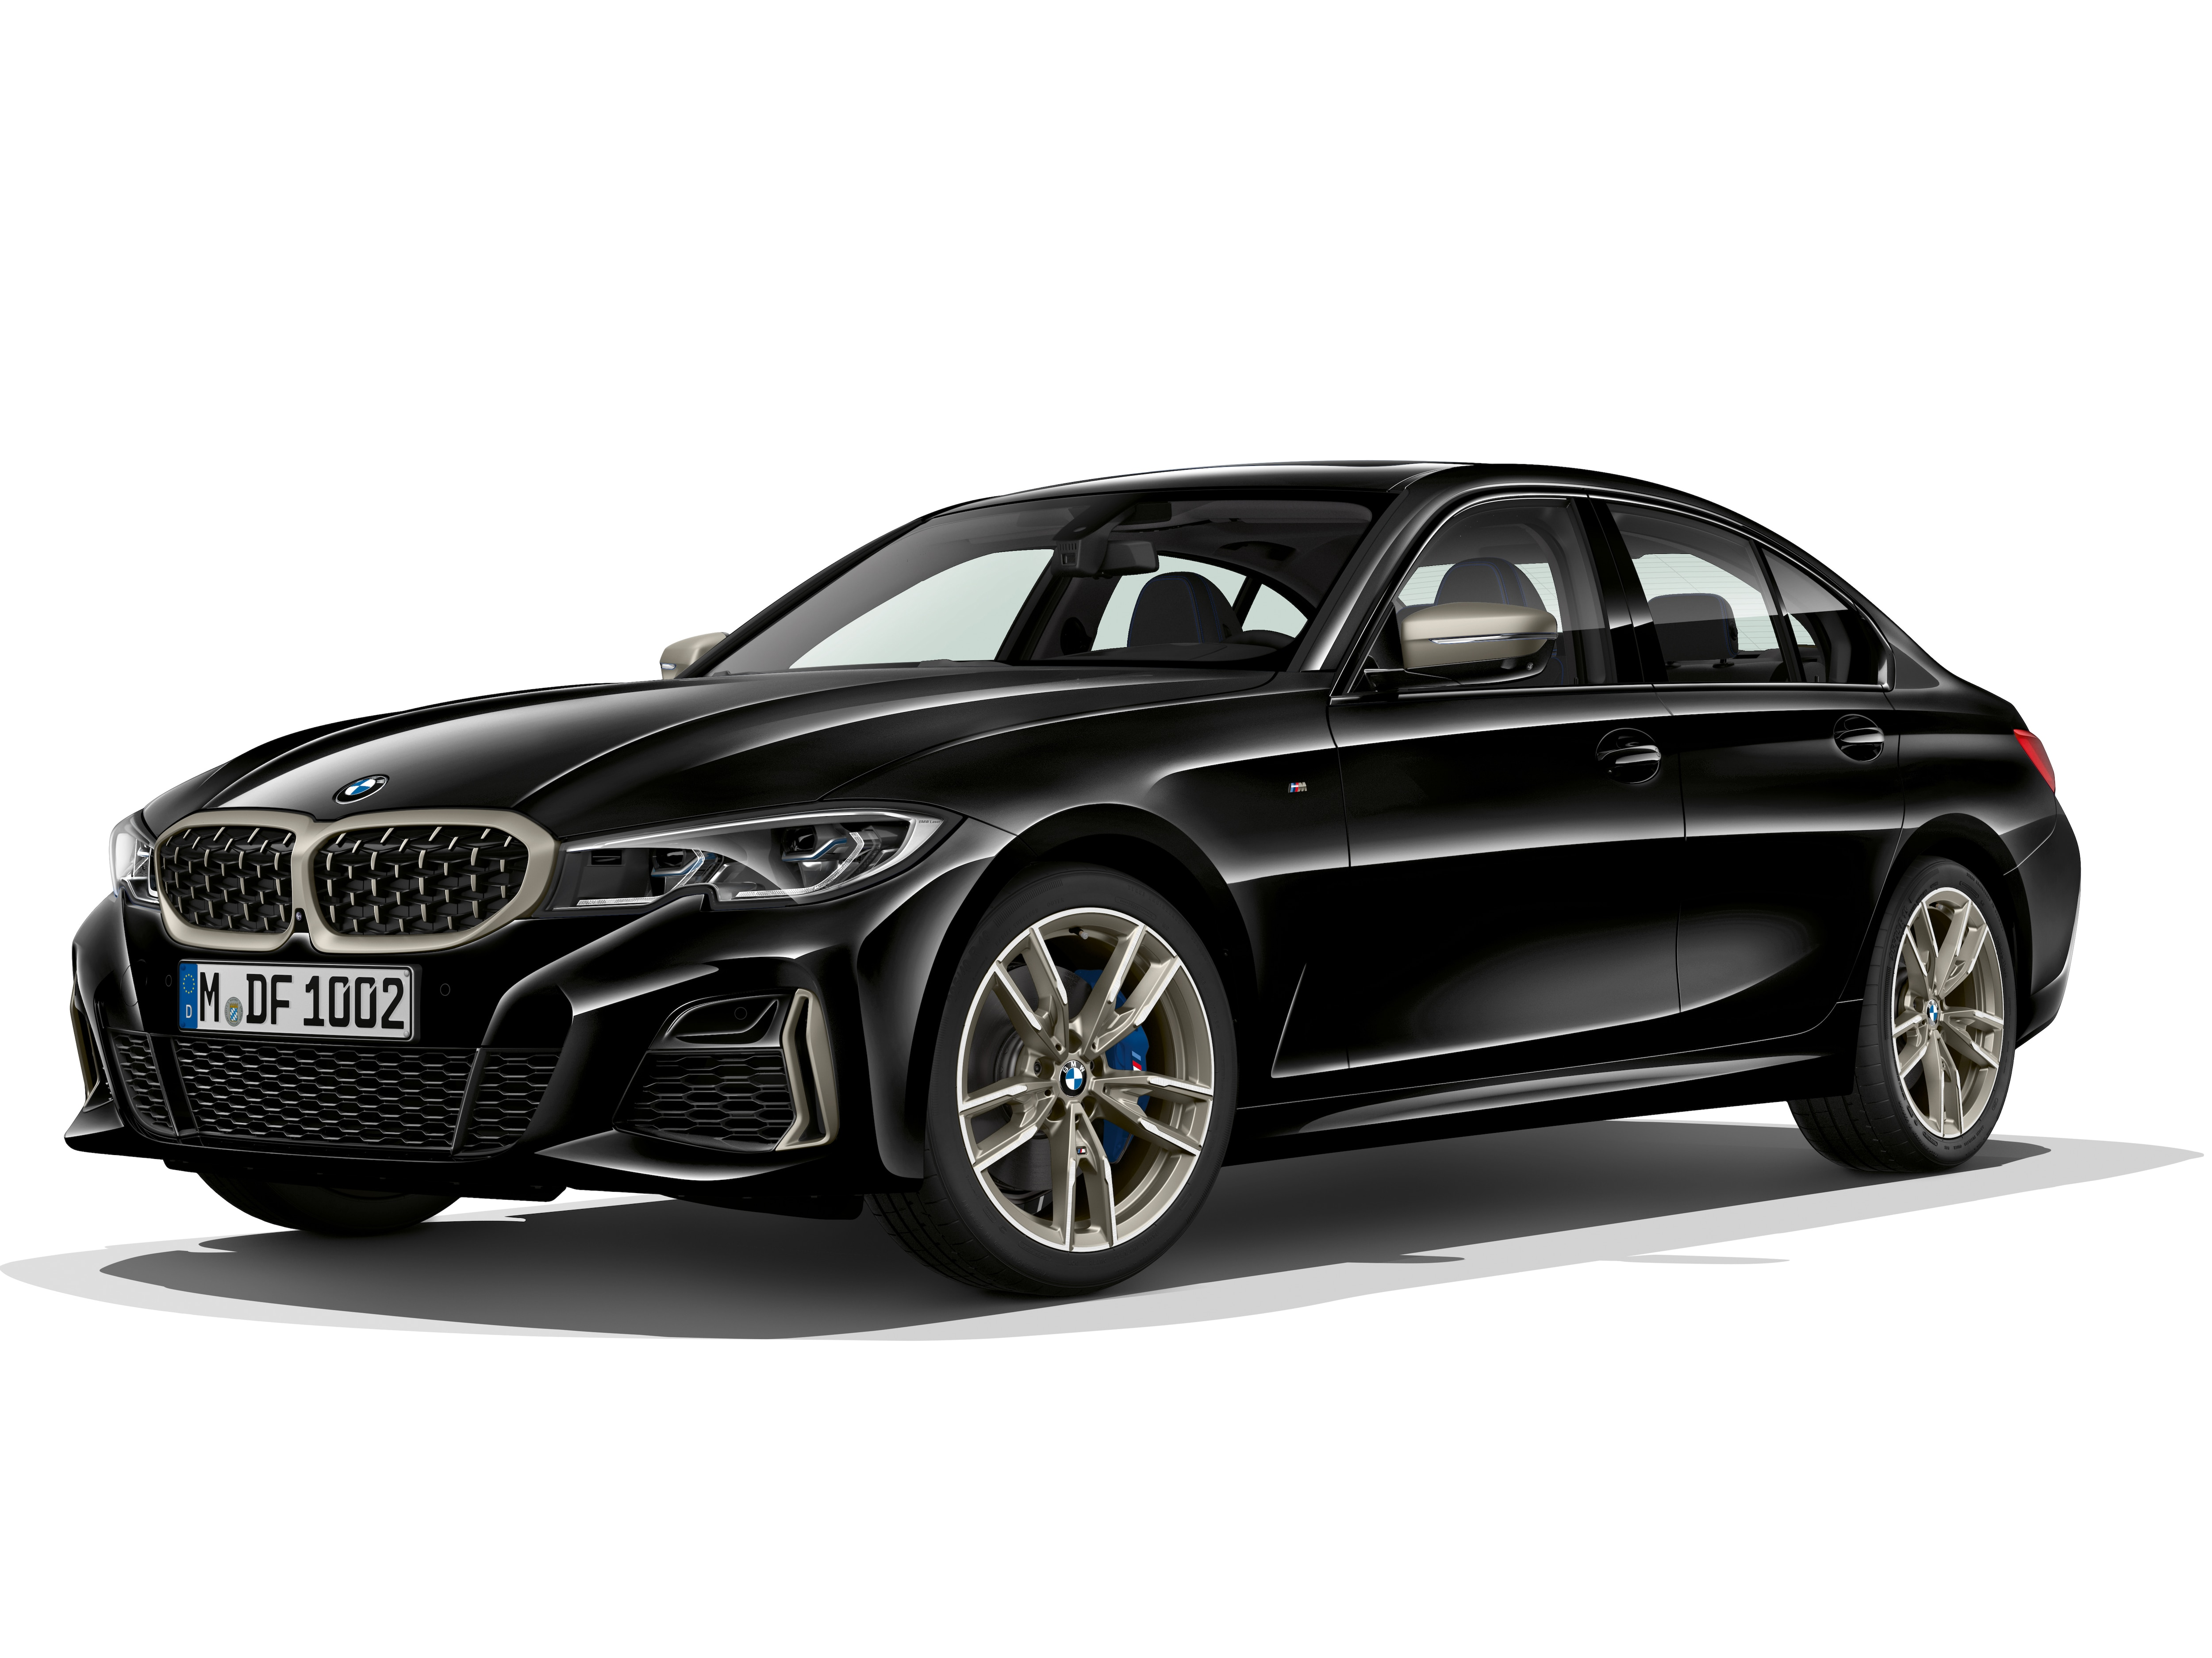 Bmw 3 Series Price In India 2020